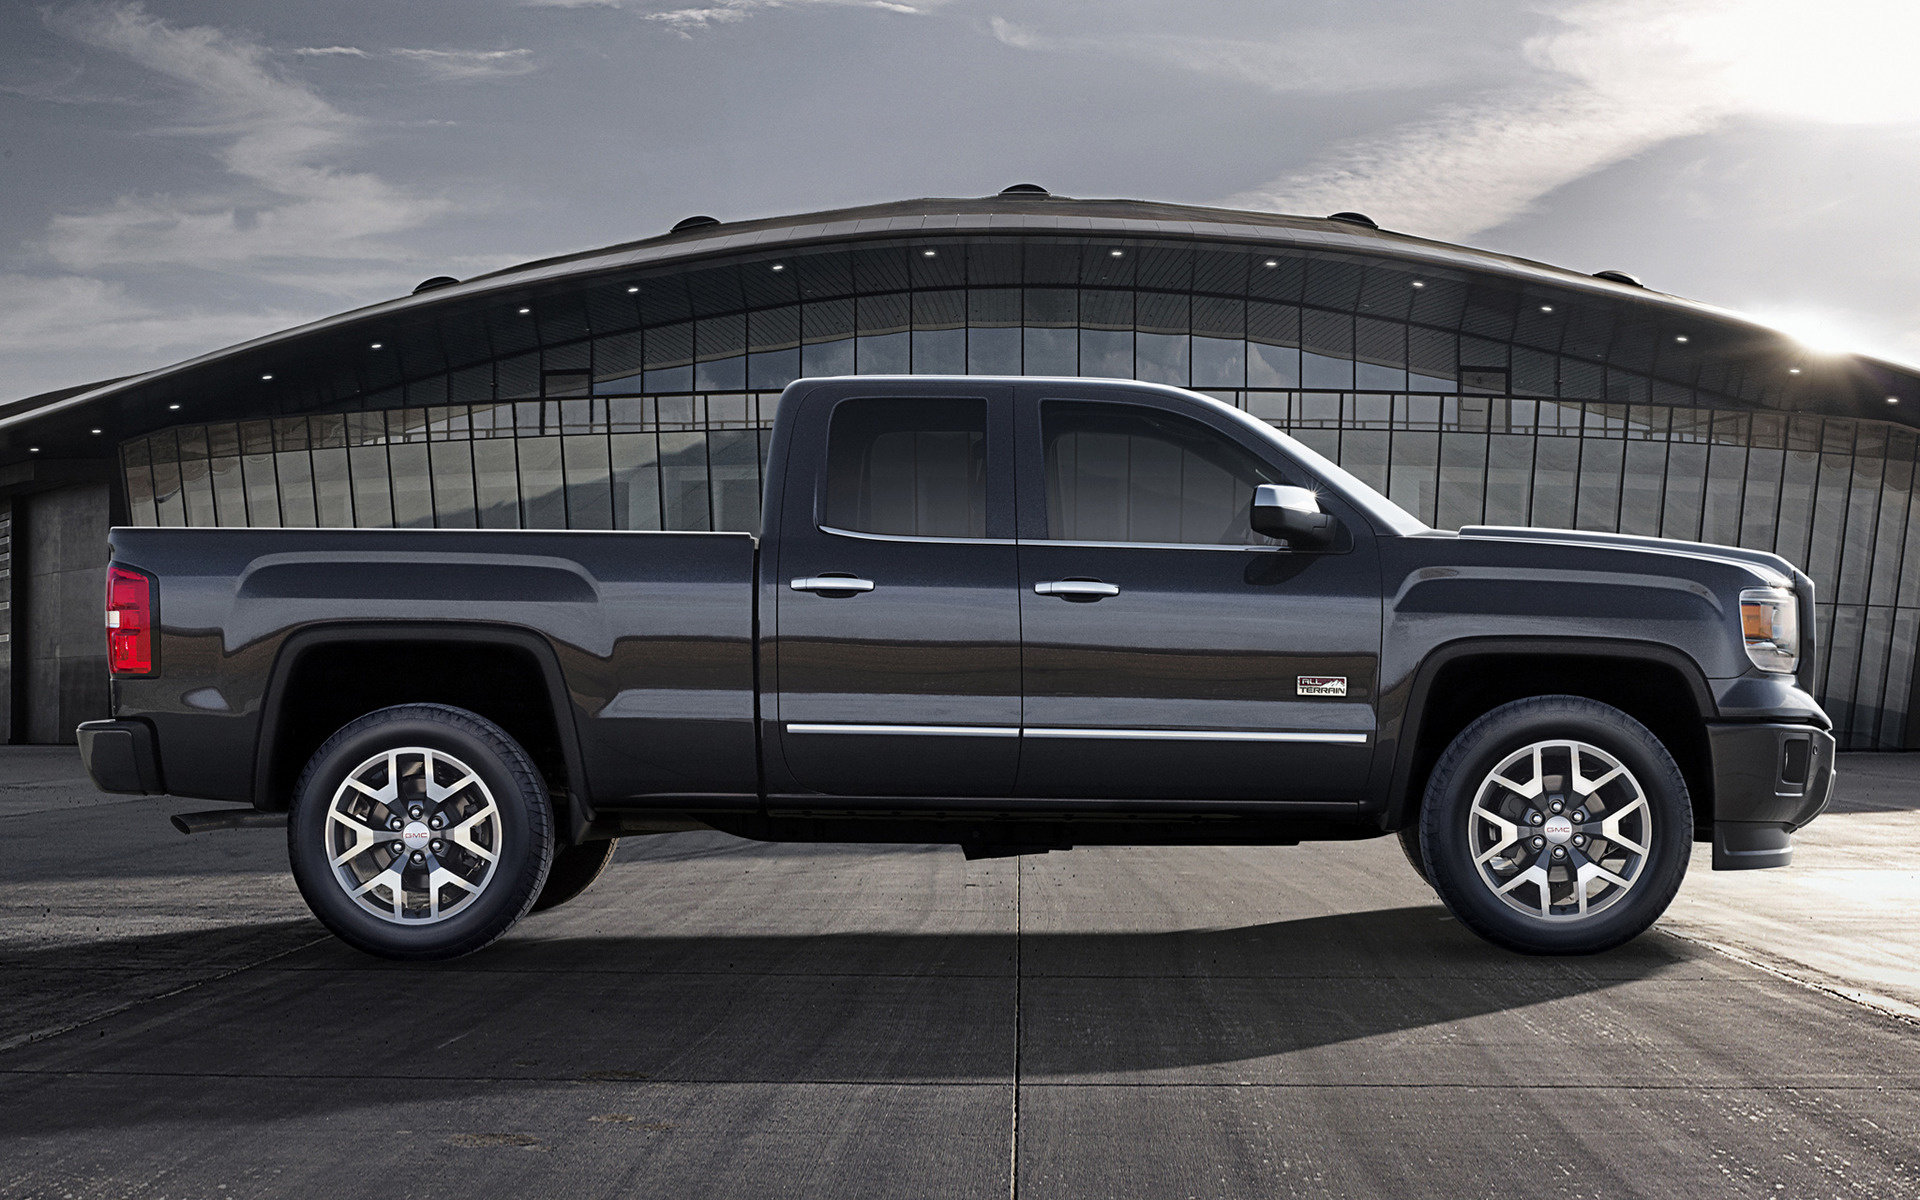 2014 GMC Sierra All Terrain 1500 Double Cab - Wallpapers ...